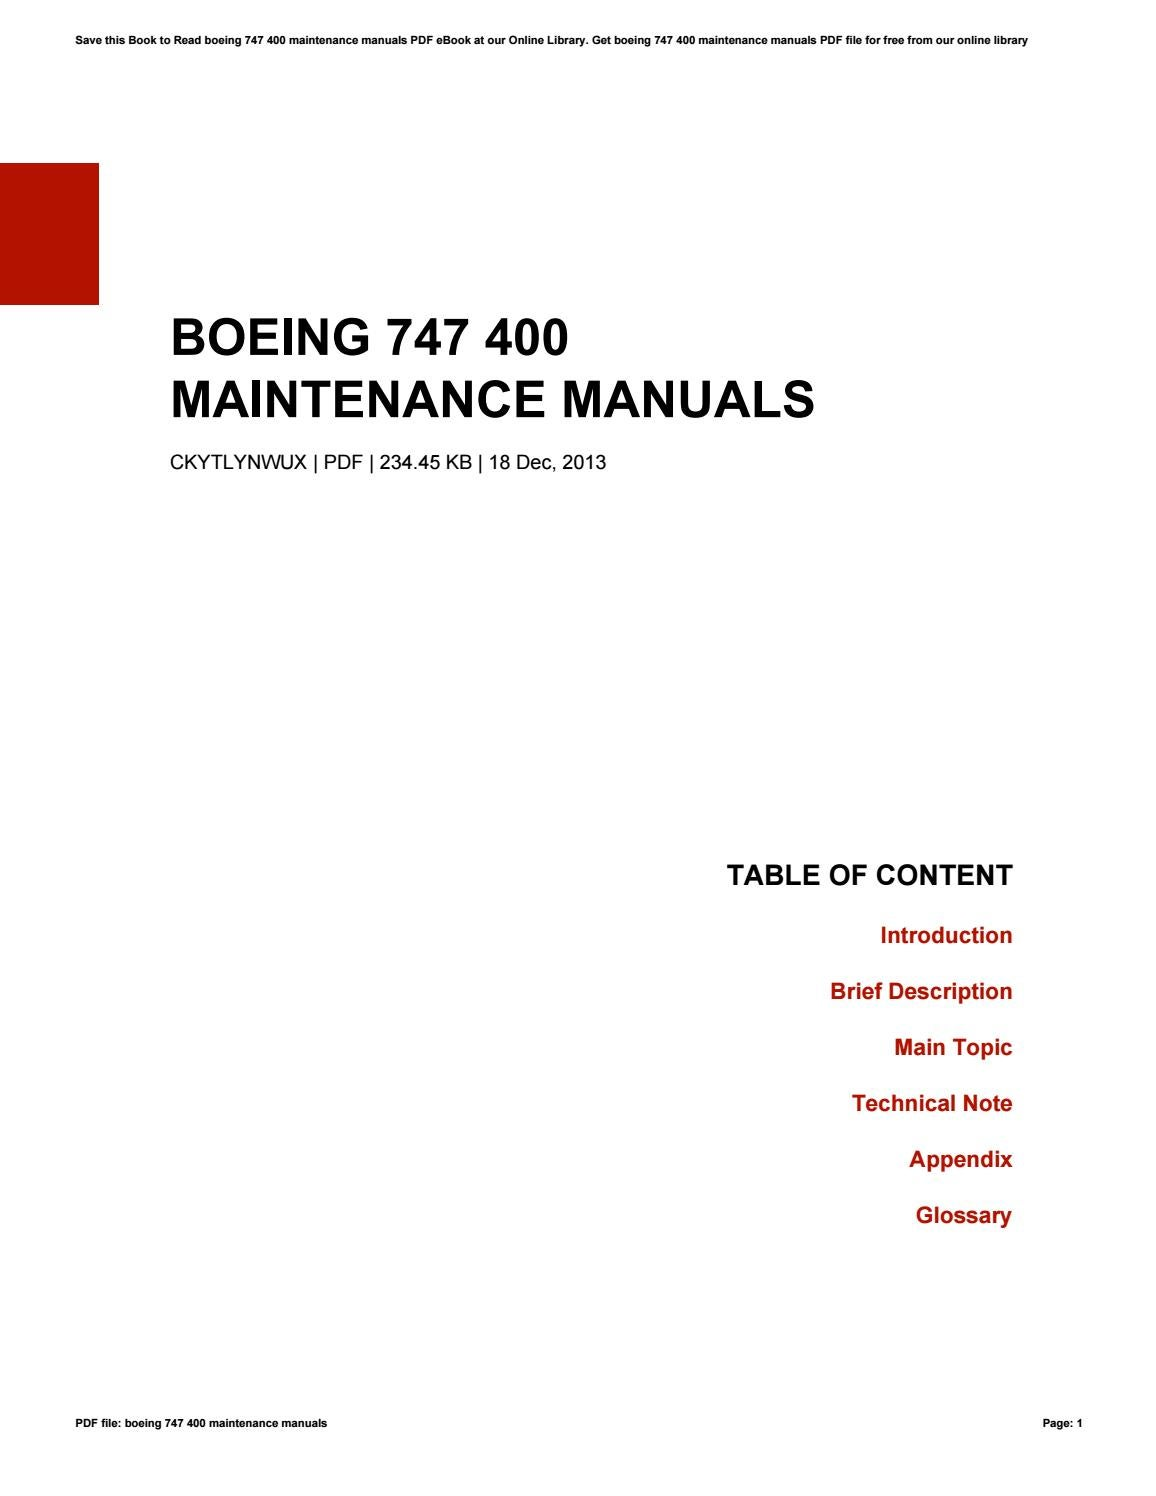 Boeing 747 400 maintenance manuals by successlocation39